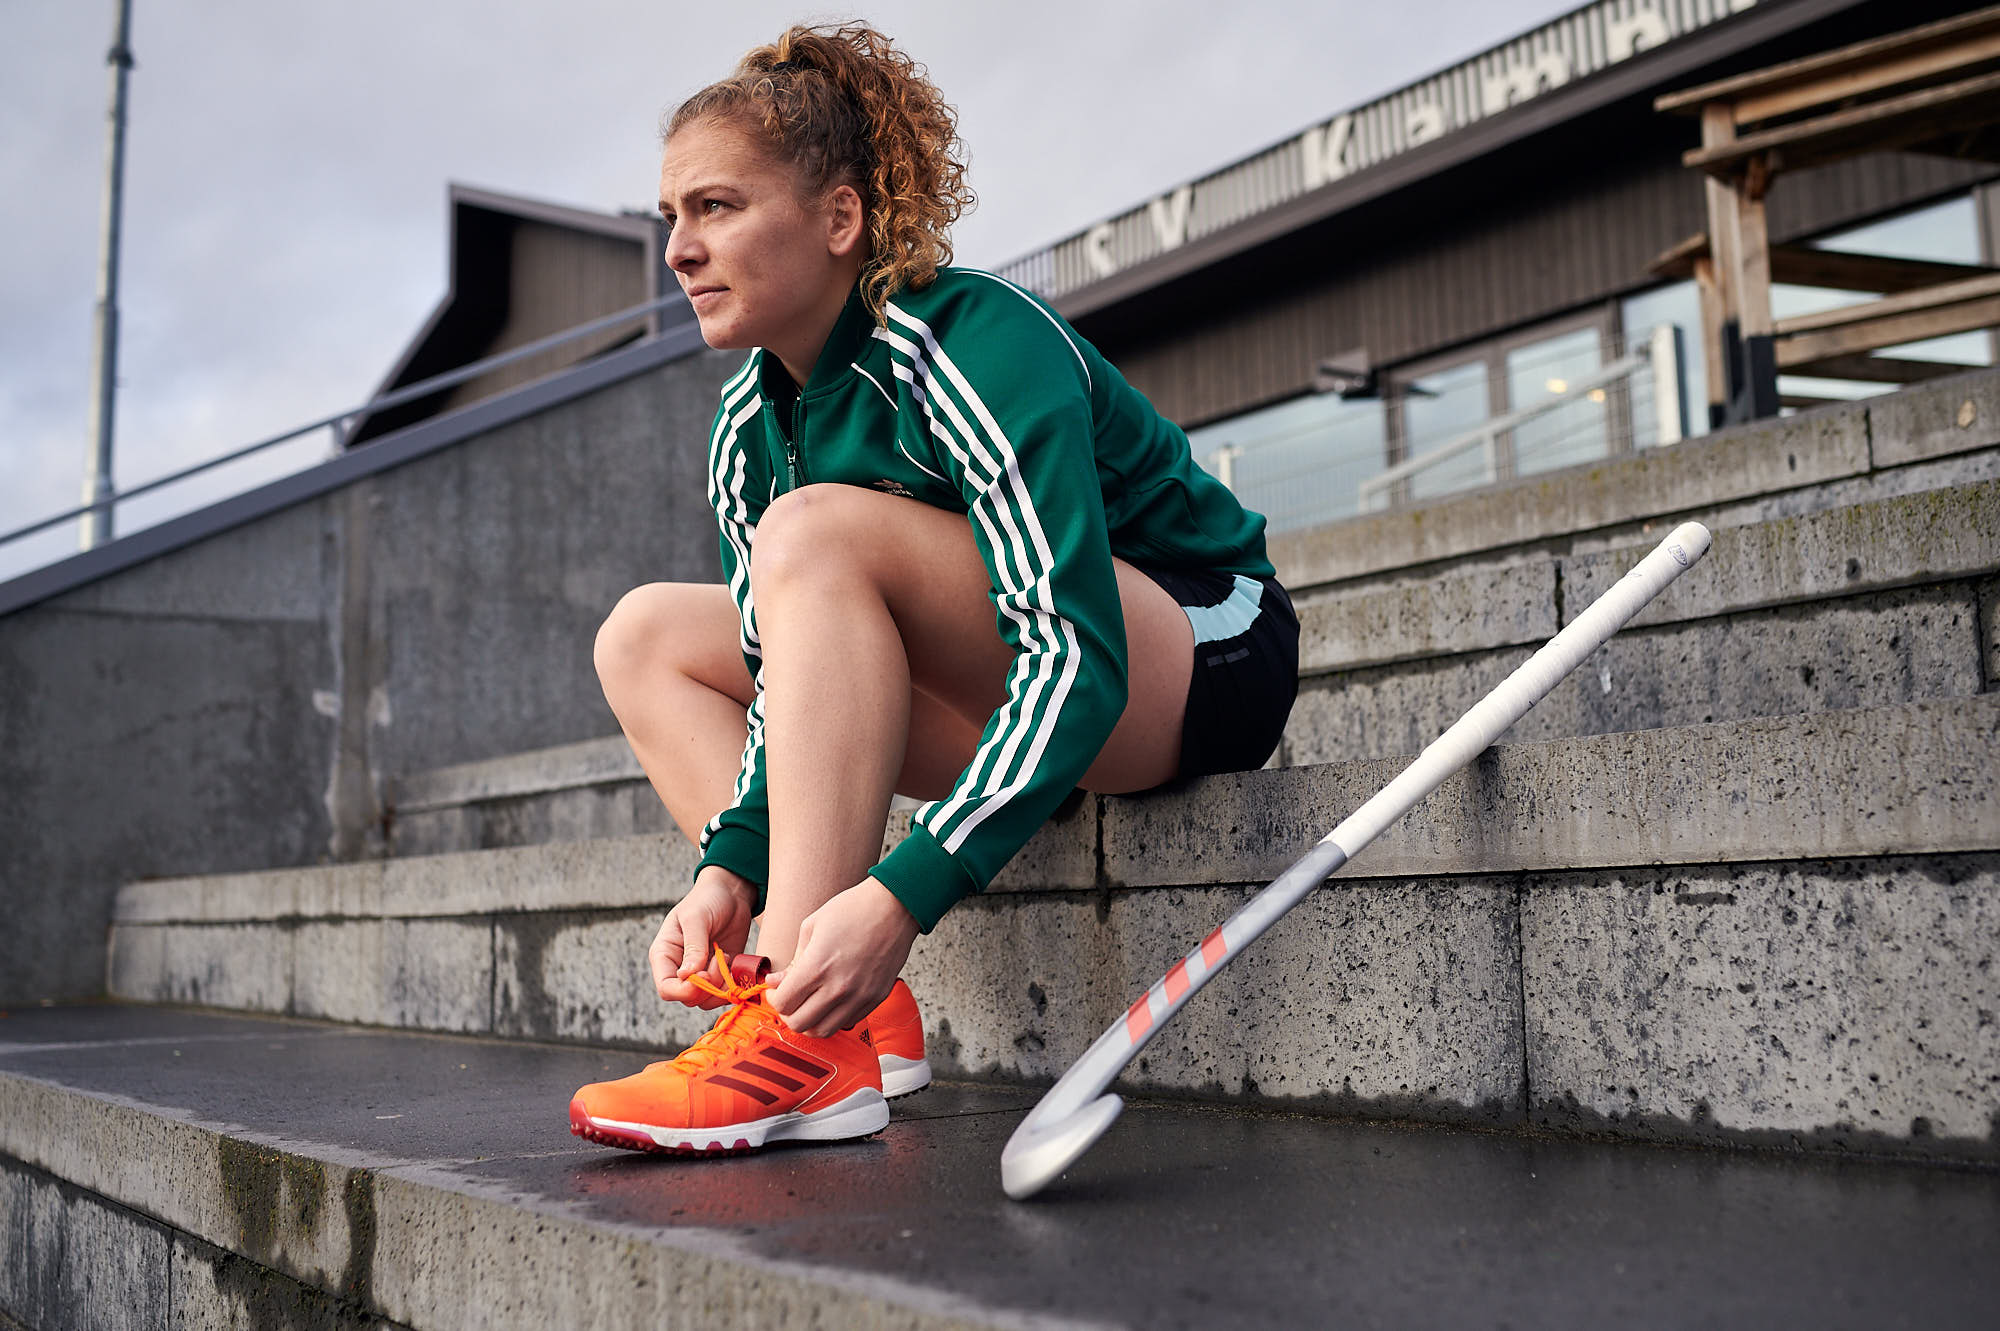 Portrait of hockey player Hester van der Veld, tying shoelaces